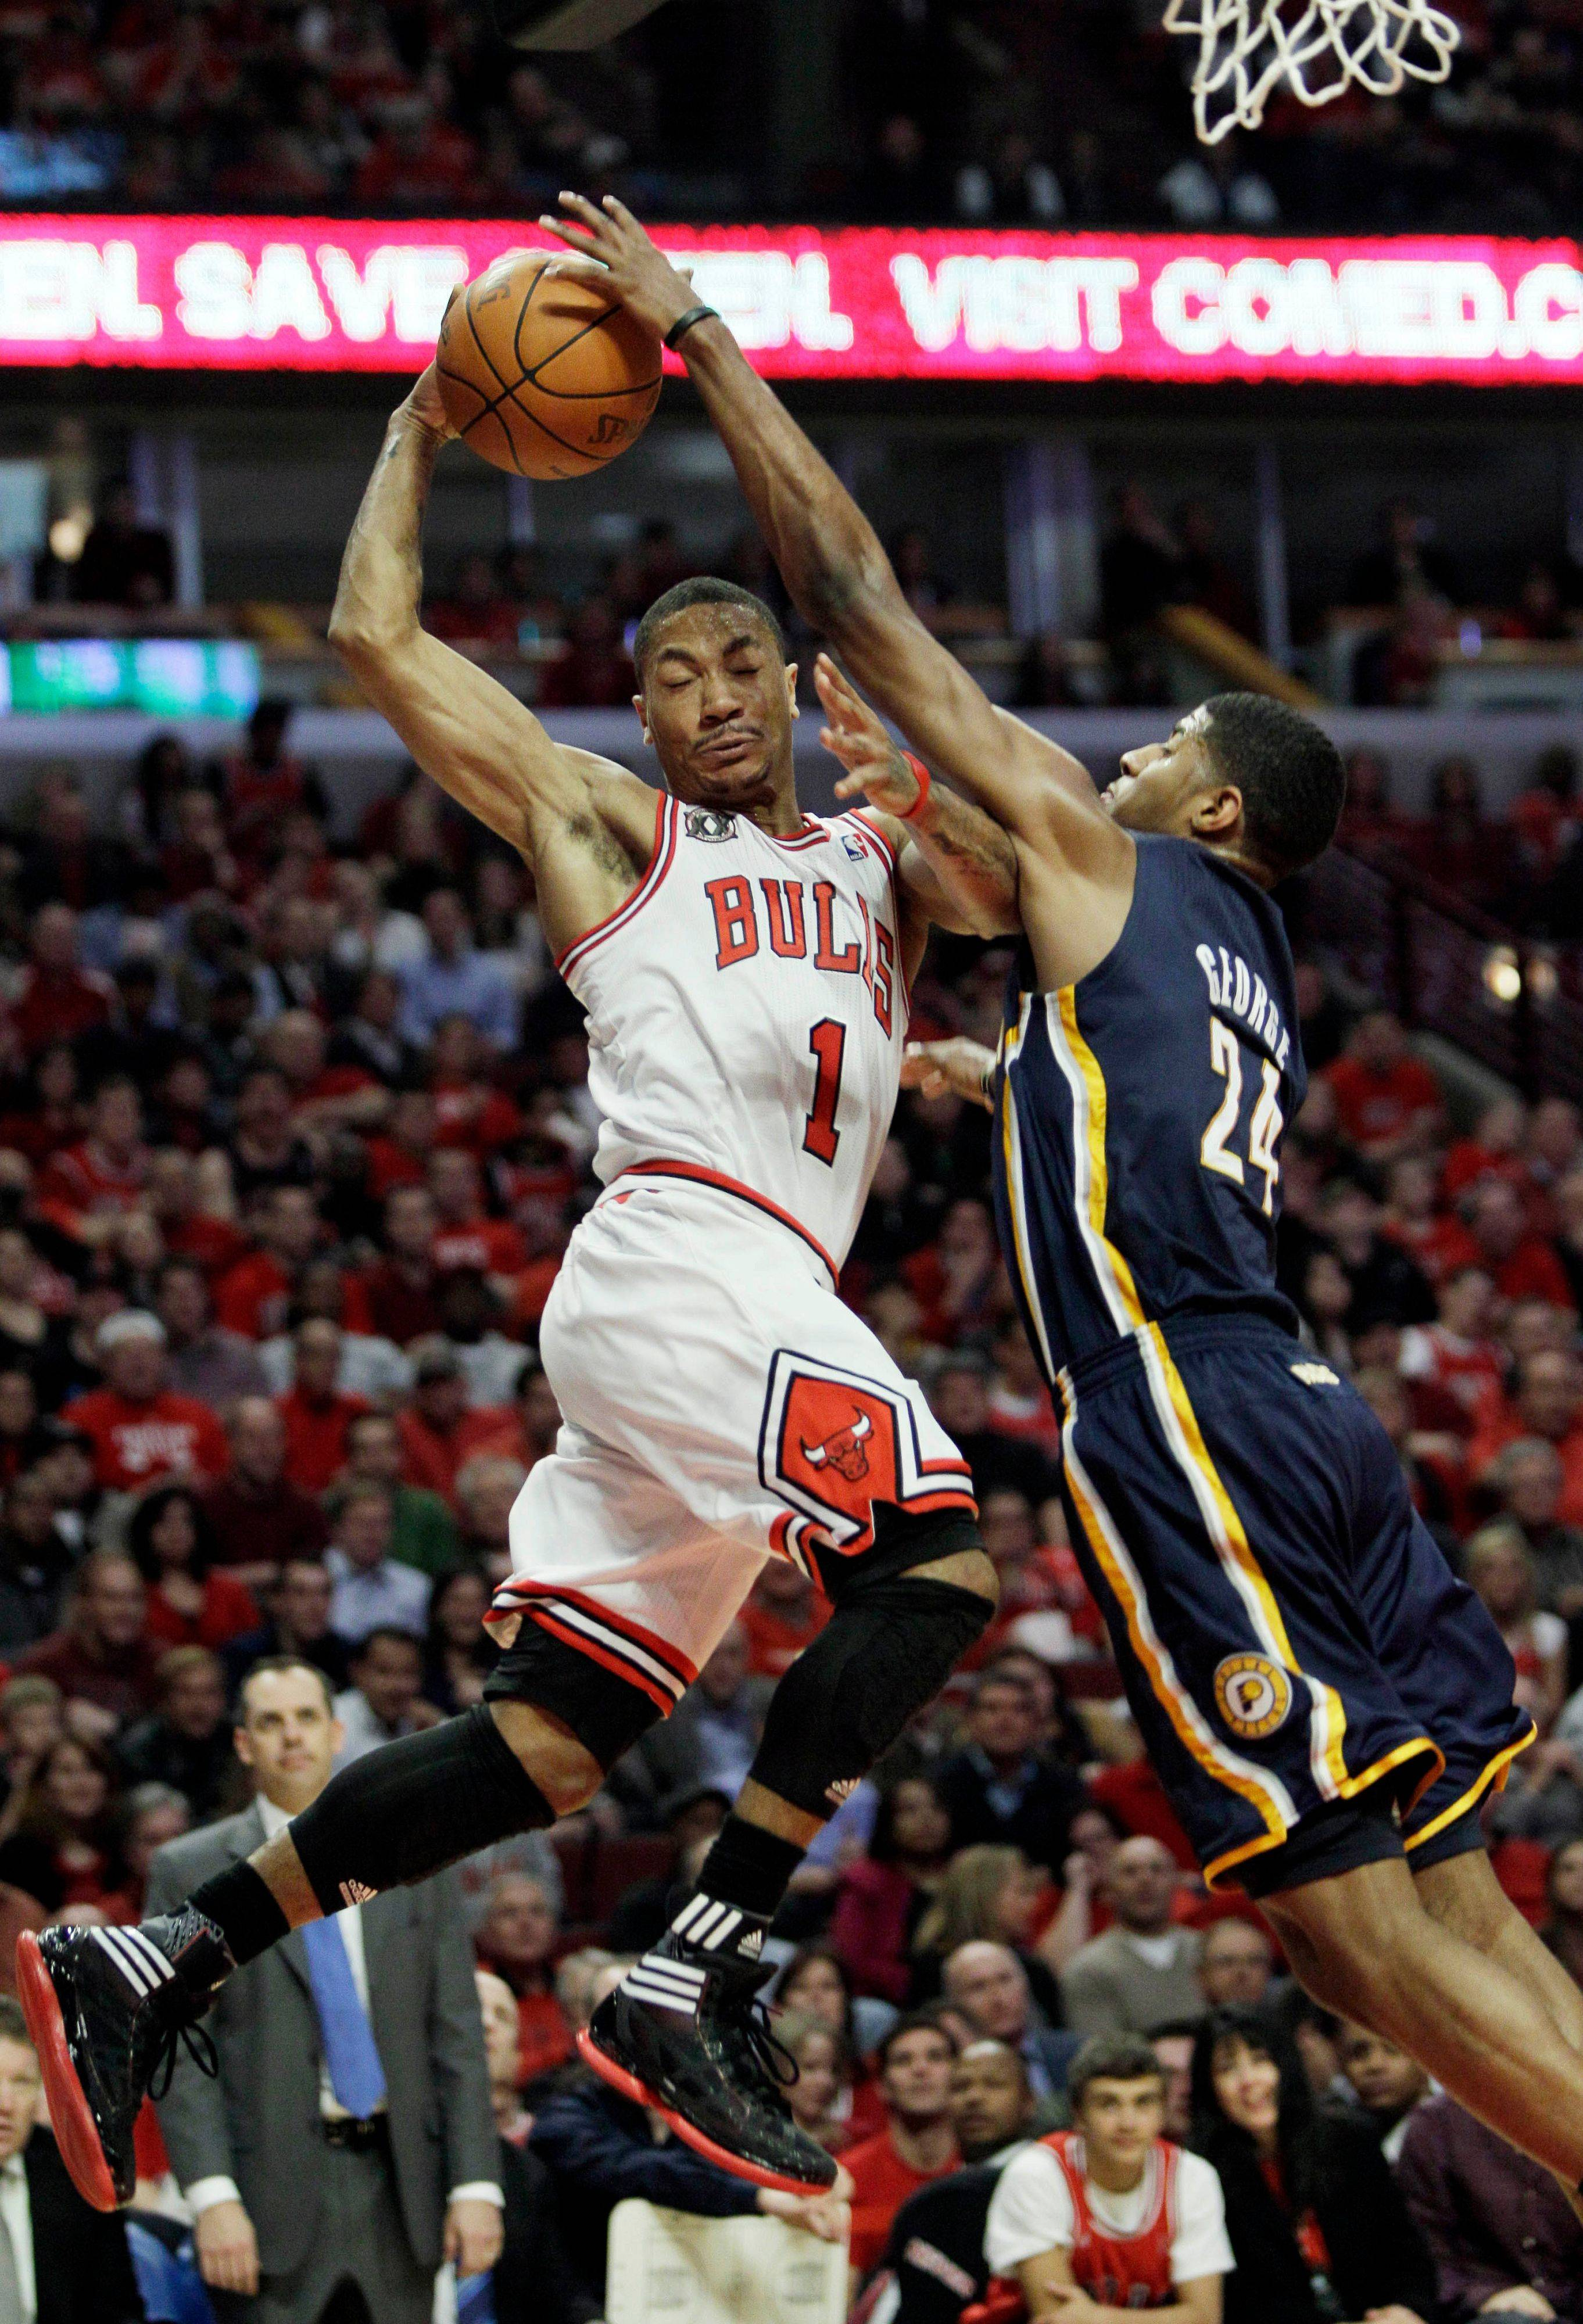 Derrick Rose, left, drives to the basket against the Indiana Pacers' Paul George during the third quarter in Game 2. The Bulls won the game 96-90.